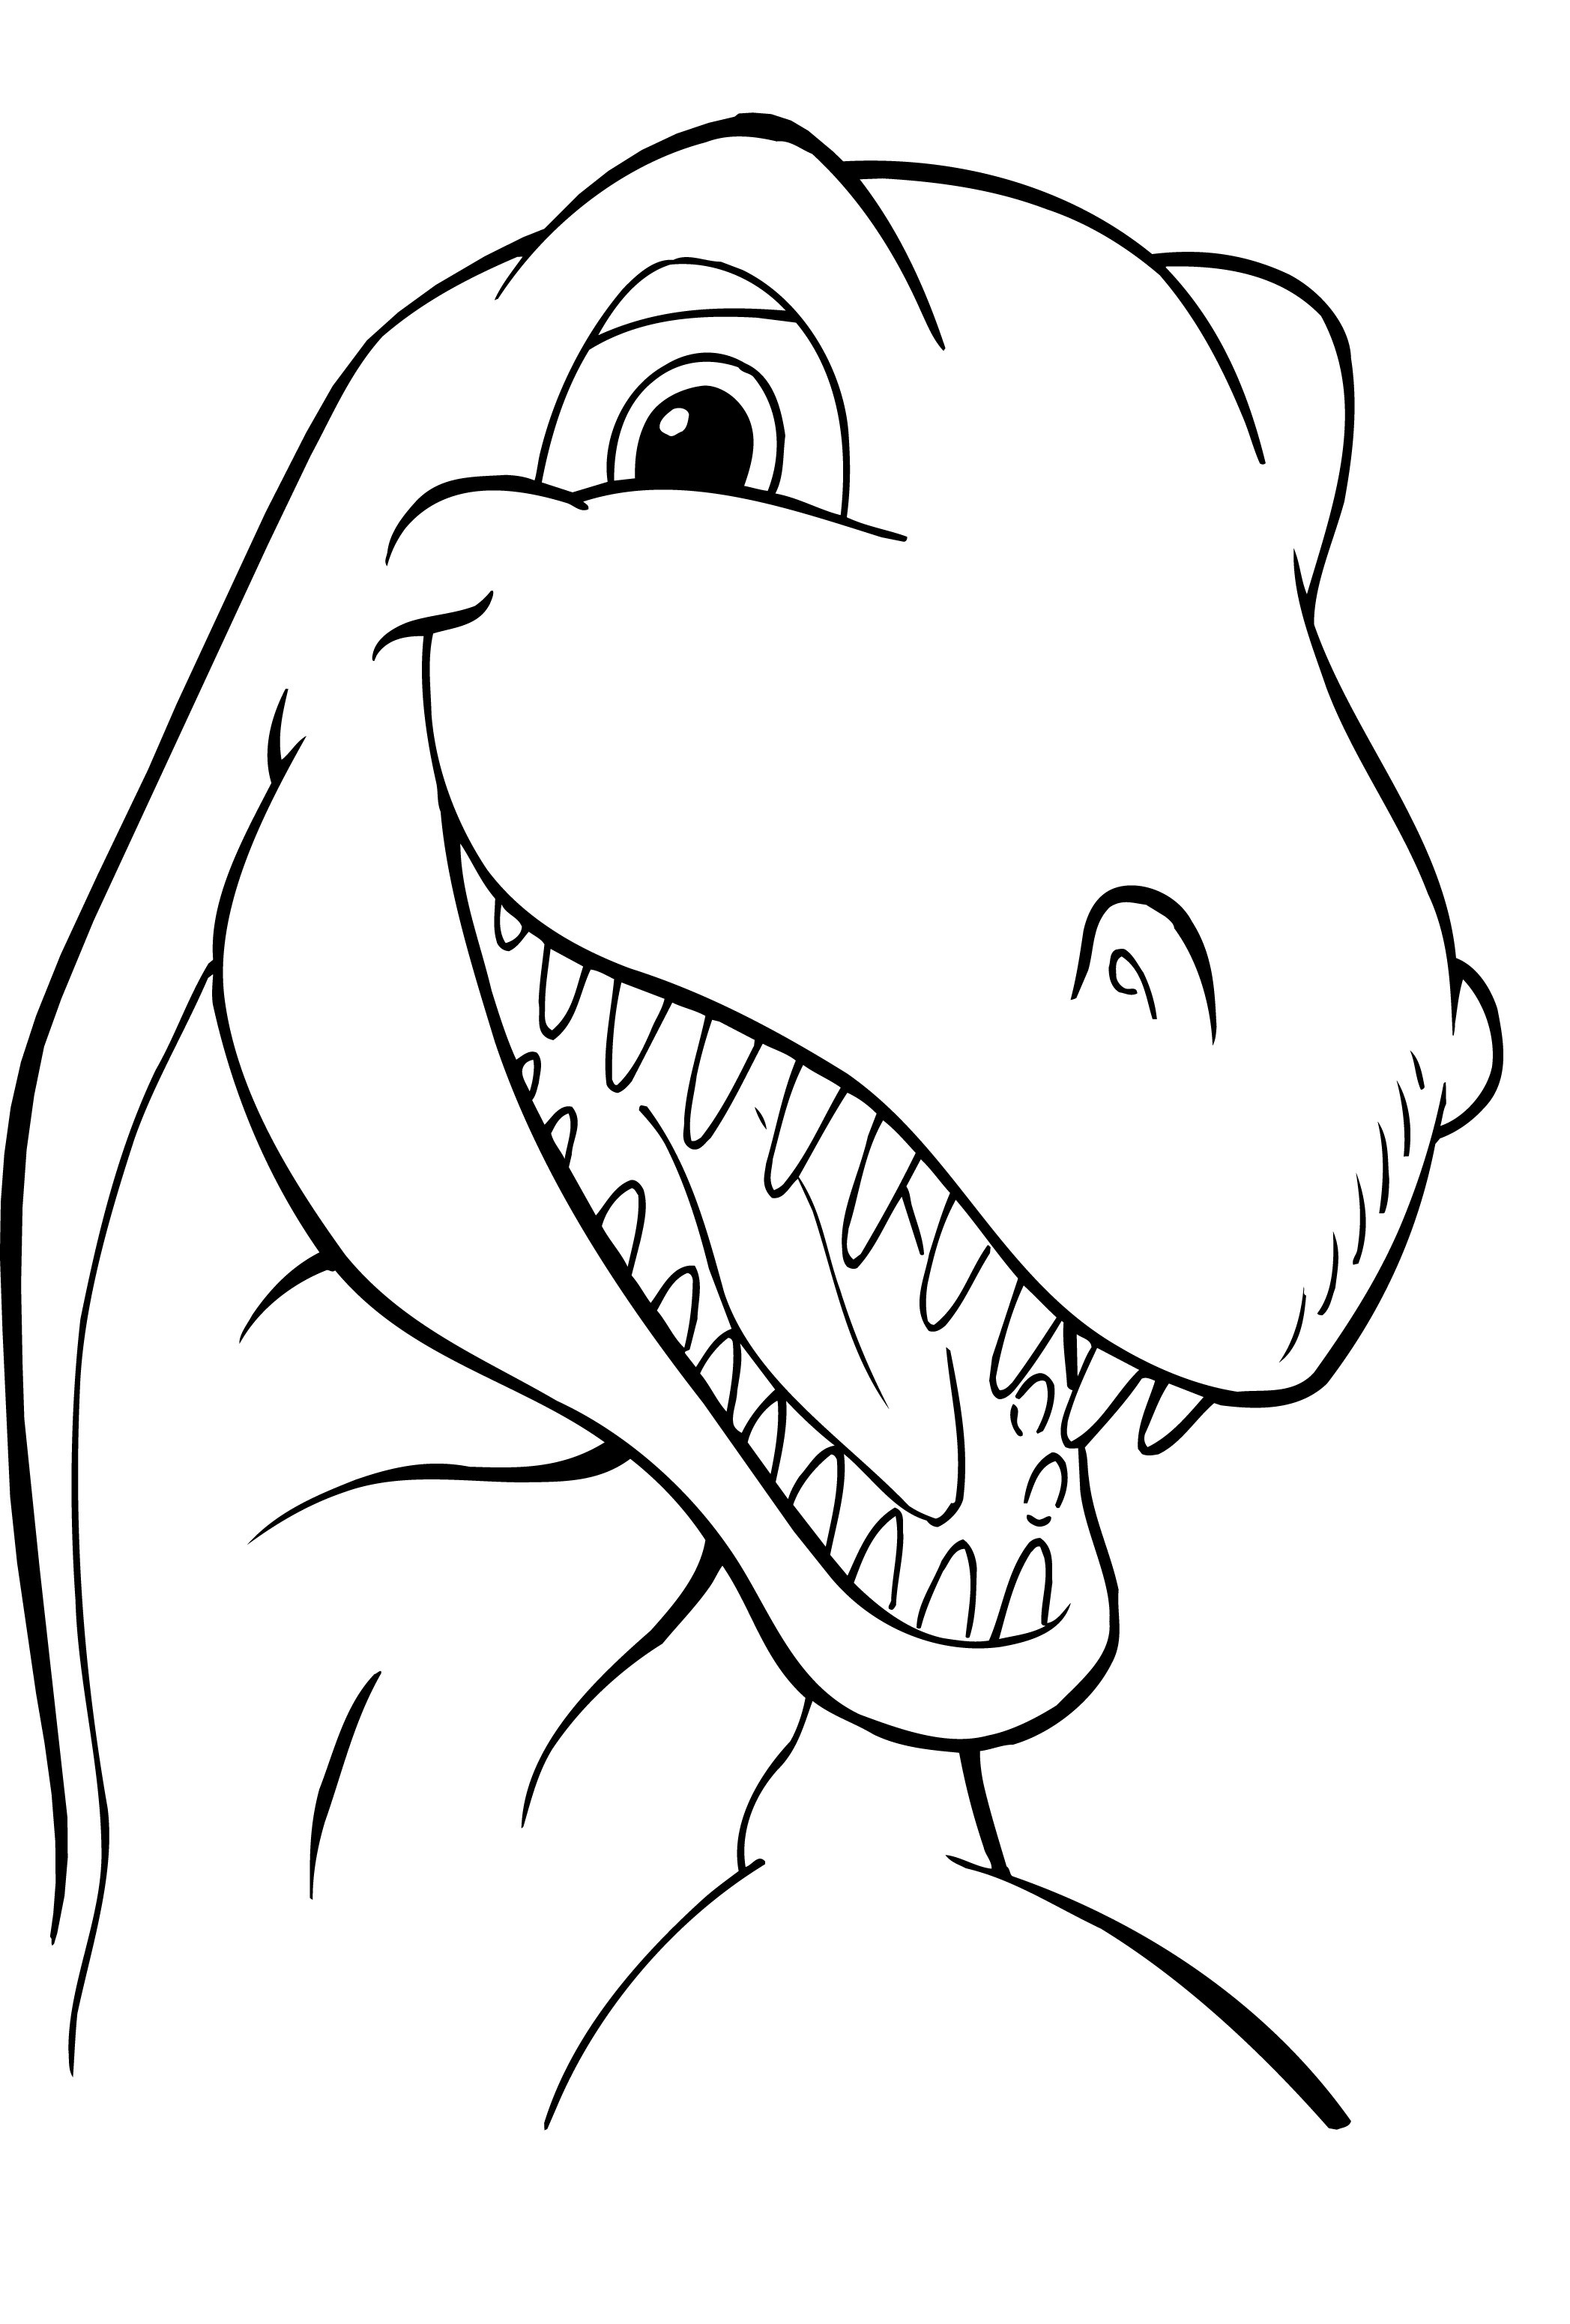 Free Printable Dinosaur Coloring Pages for Child 6212 Dinosaurs Printable Of Dinosaur Clipart Coloring Page Triceratop Pencil and In Color Gallery